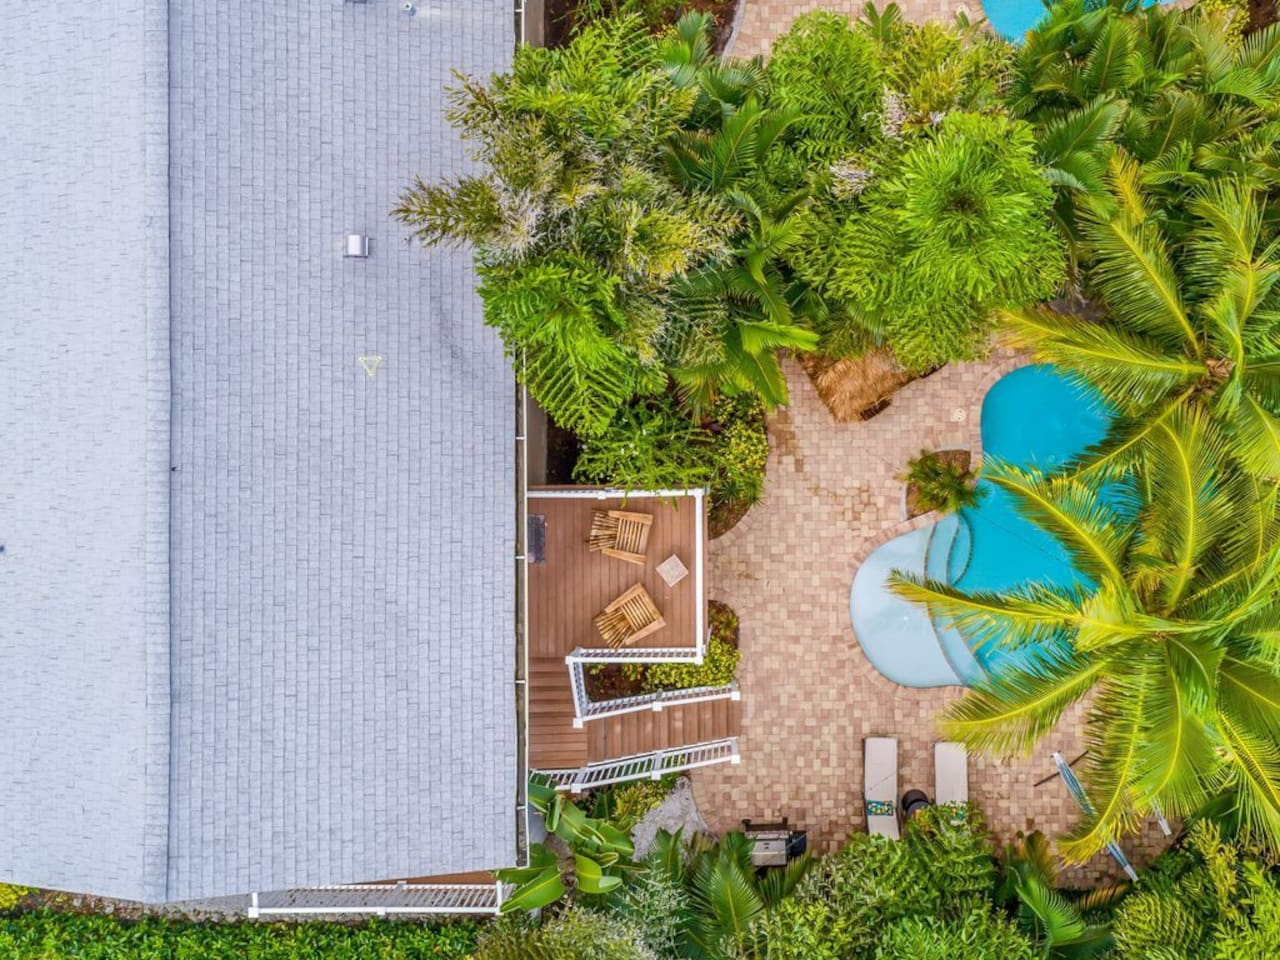 Plush tropical landscaping provides a great barrier and makes the backyard your own PRIVATE oasis